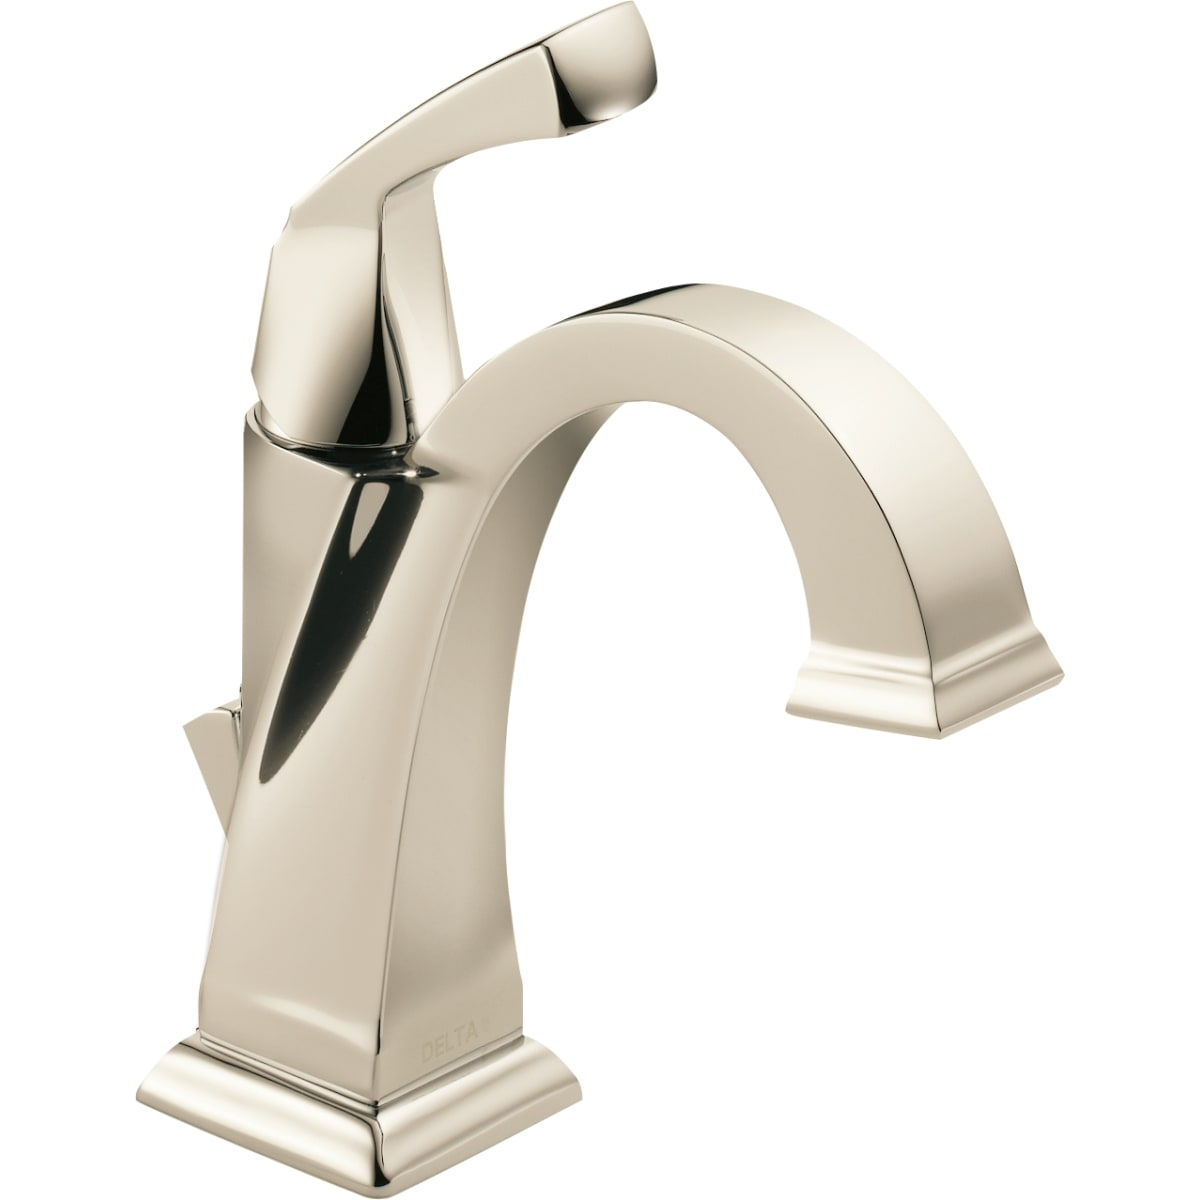 Delta Bathroom Faucets Moreover Delta Bathroom Faucet Parts Diagram